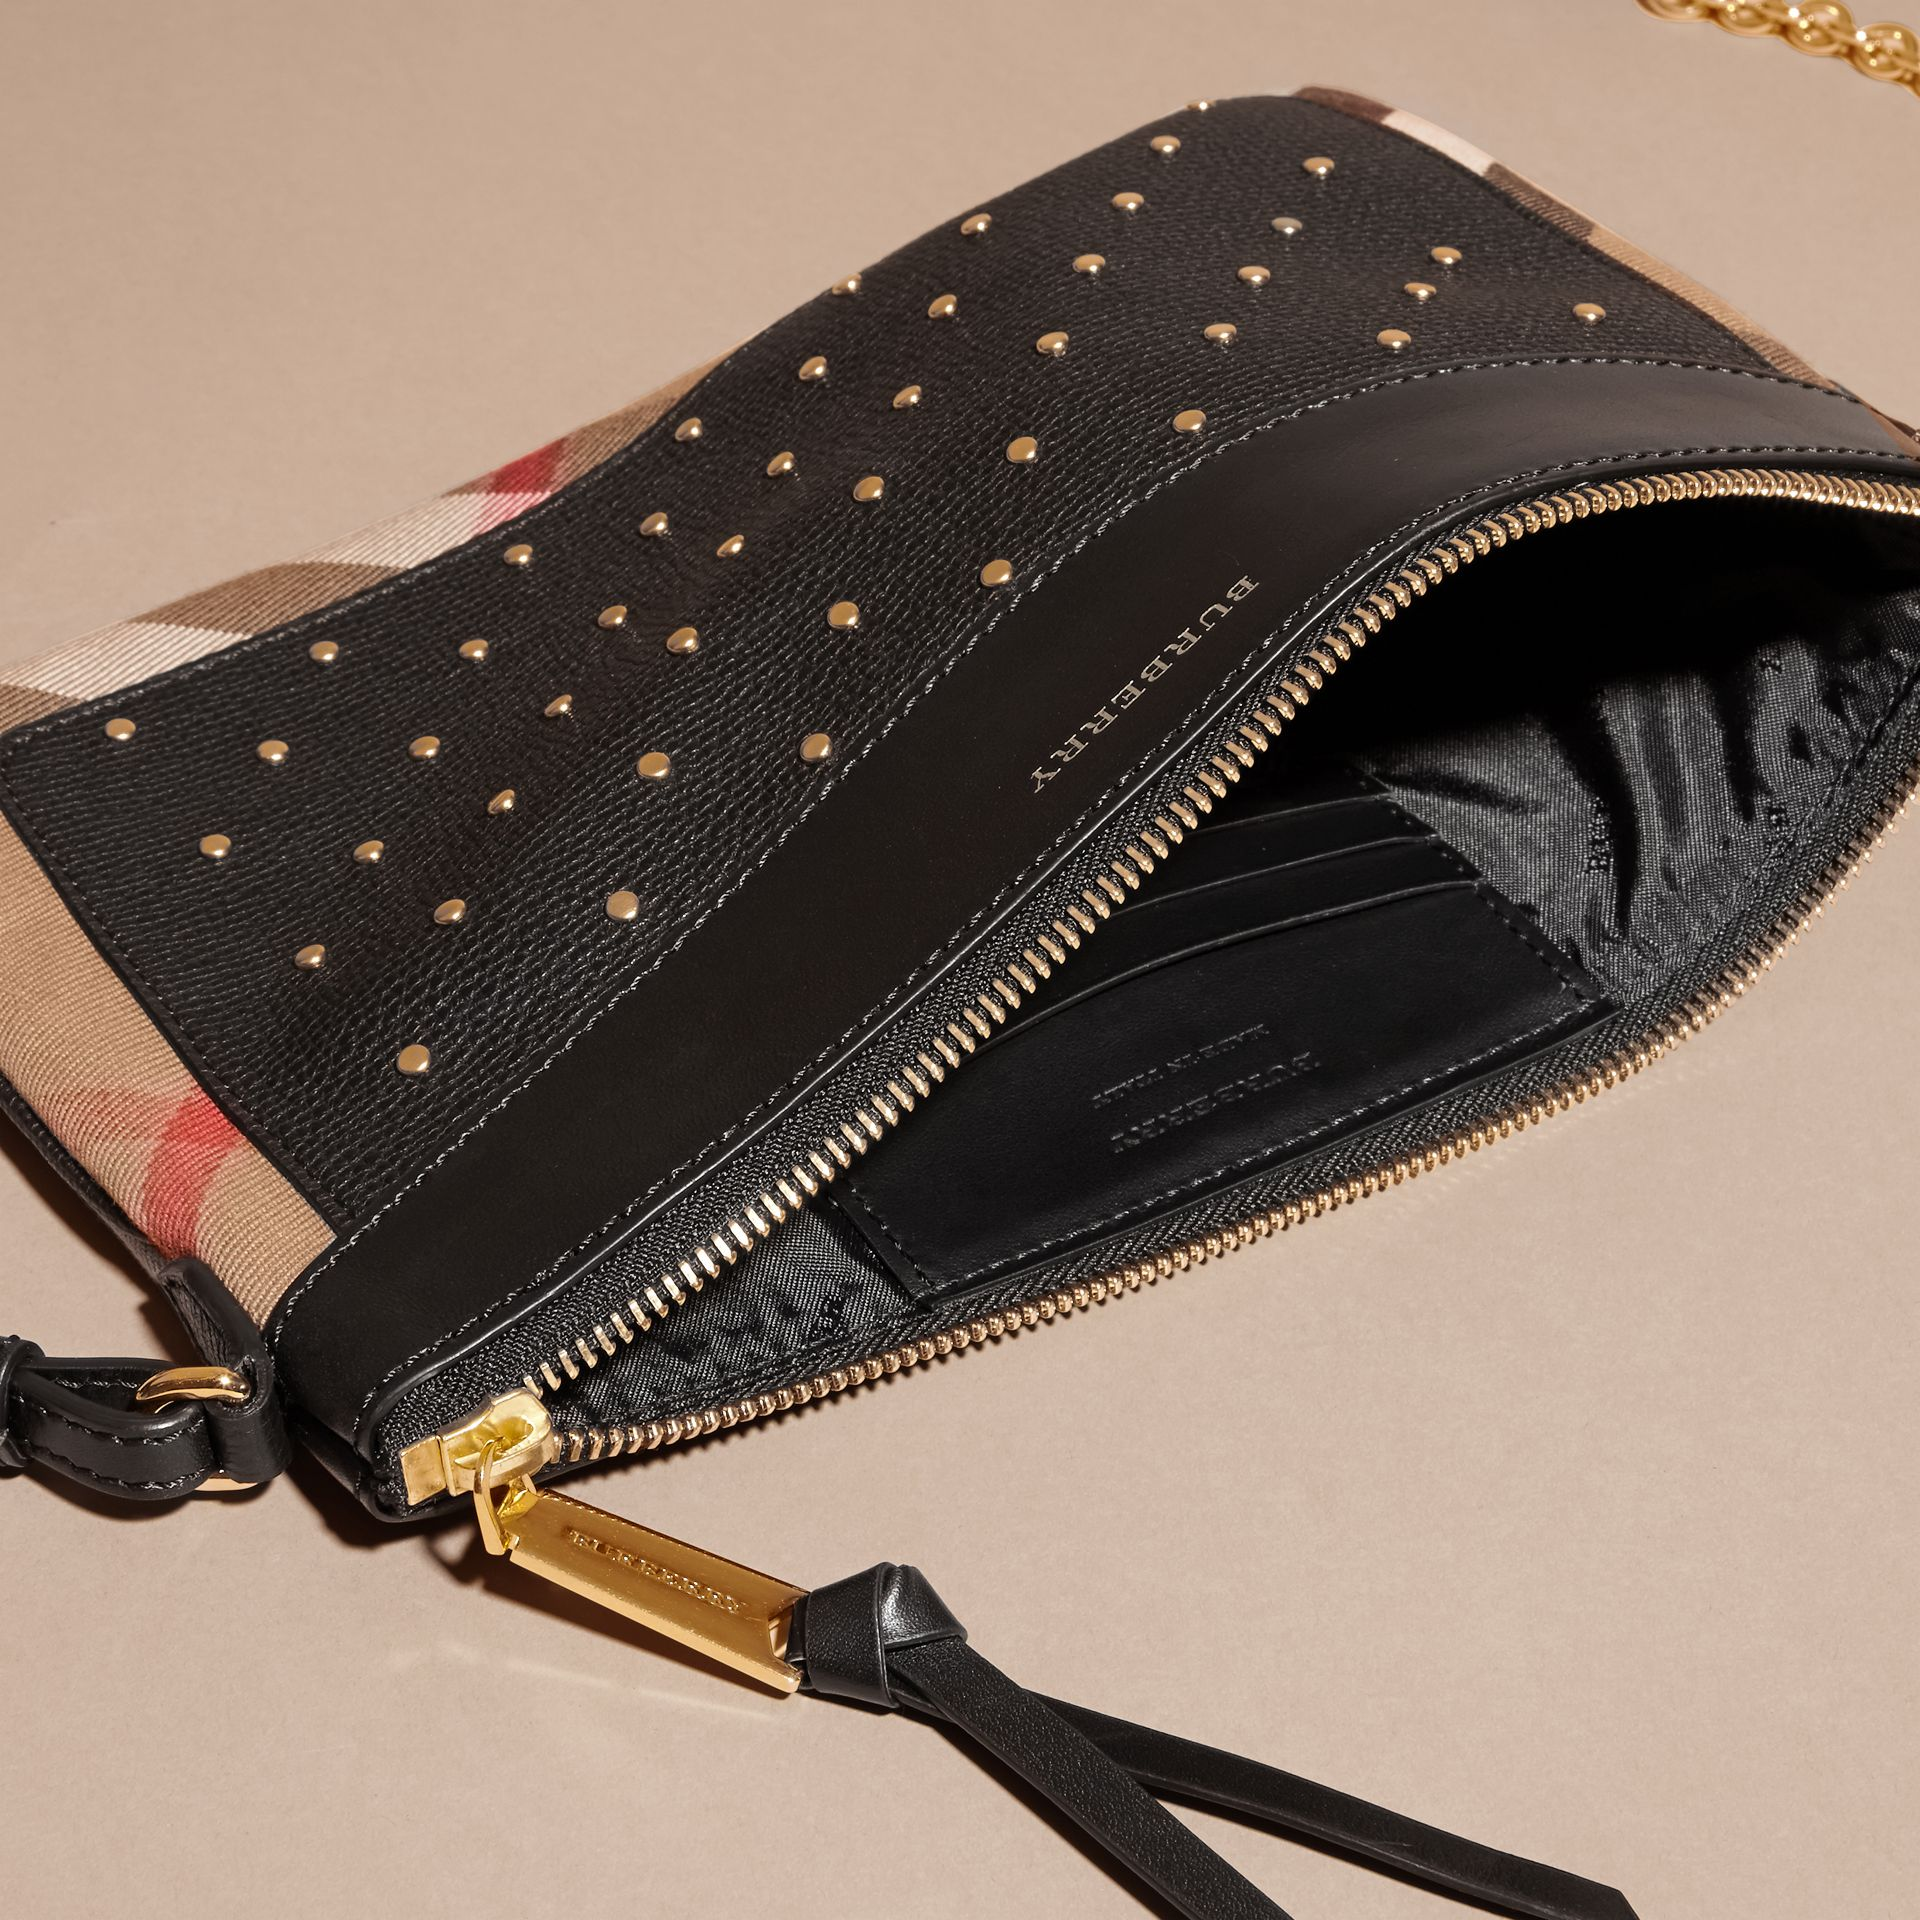 Riveted Leather and House Check Clutch Bag in Black - gallery image 6